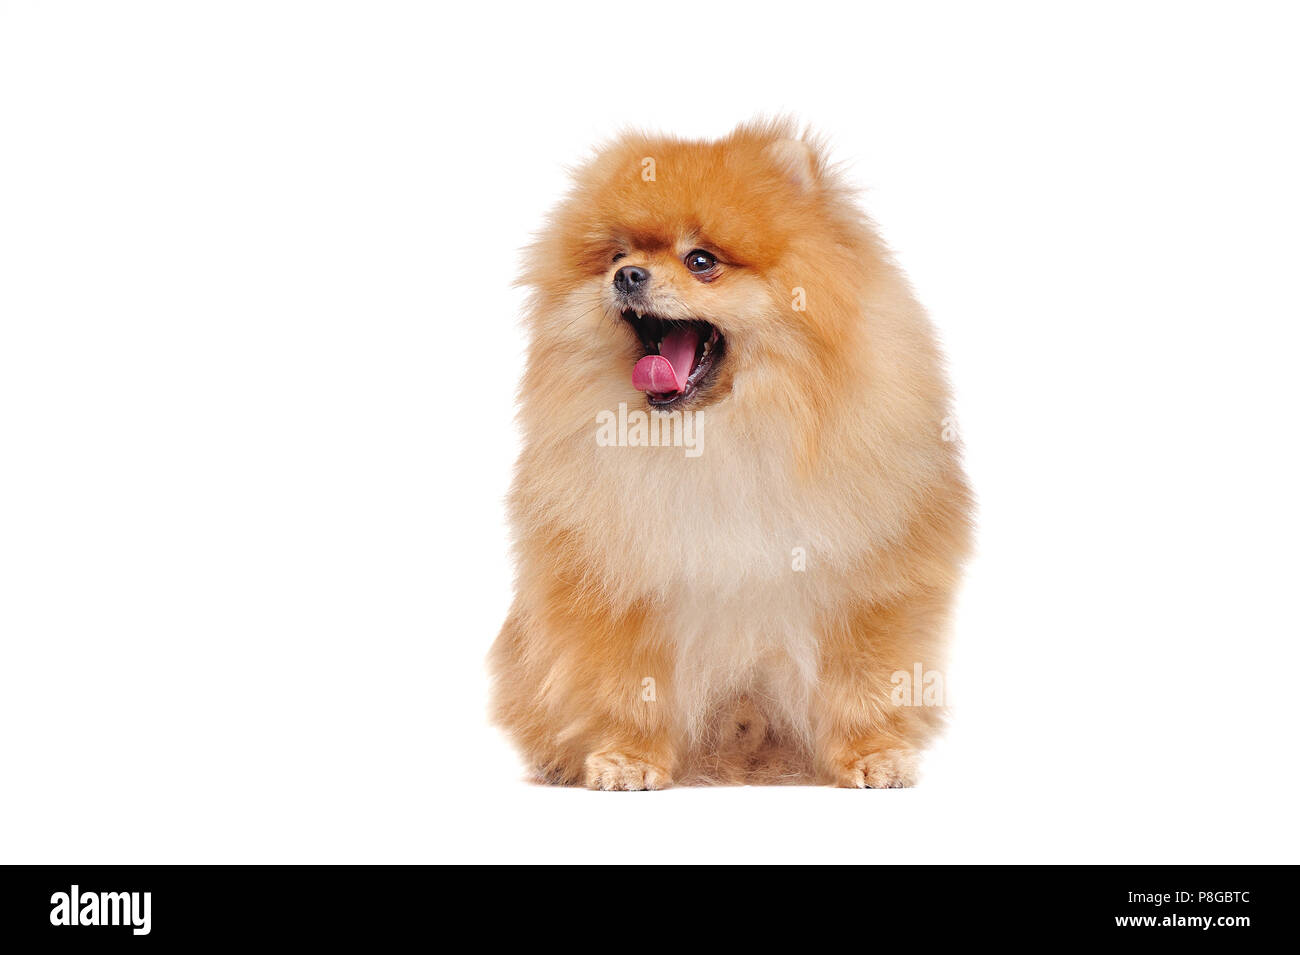 Yawning red pomeranian spitz looking to the side - Stock Image